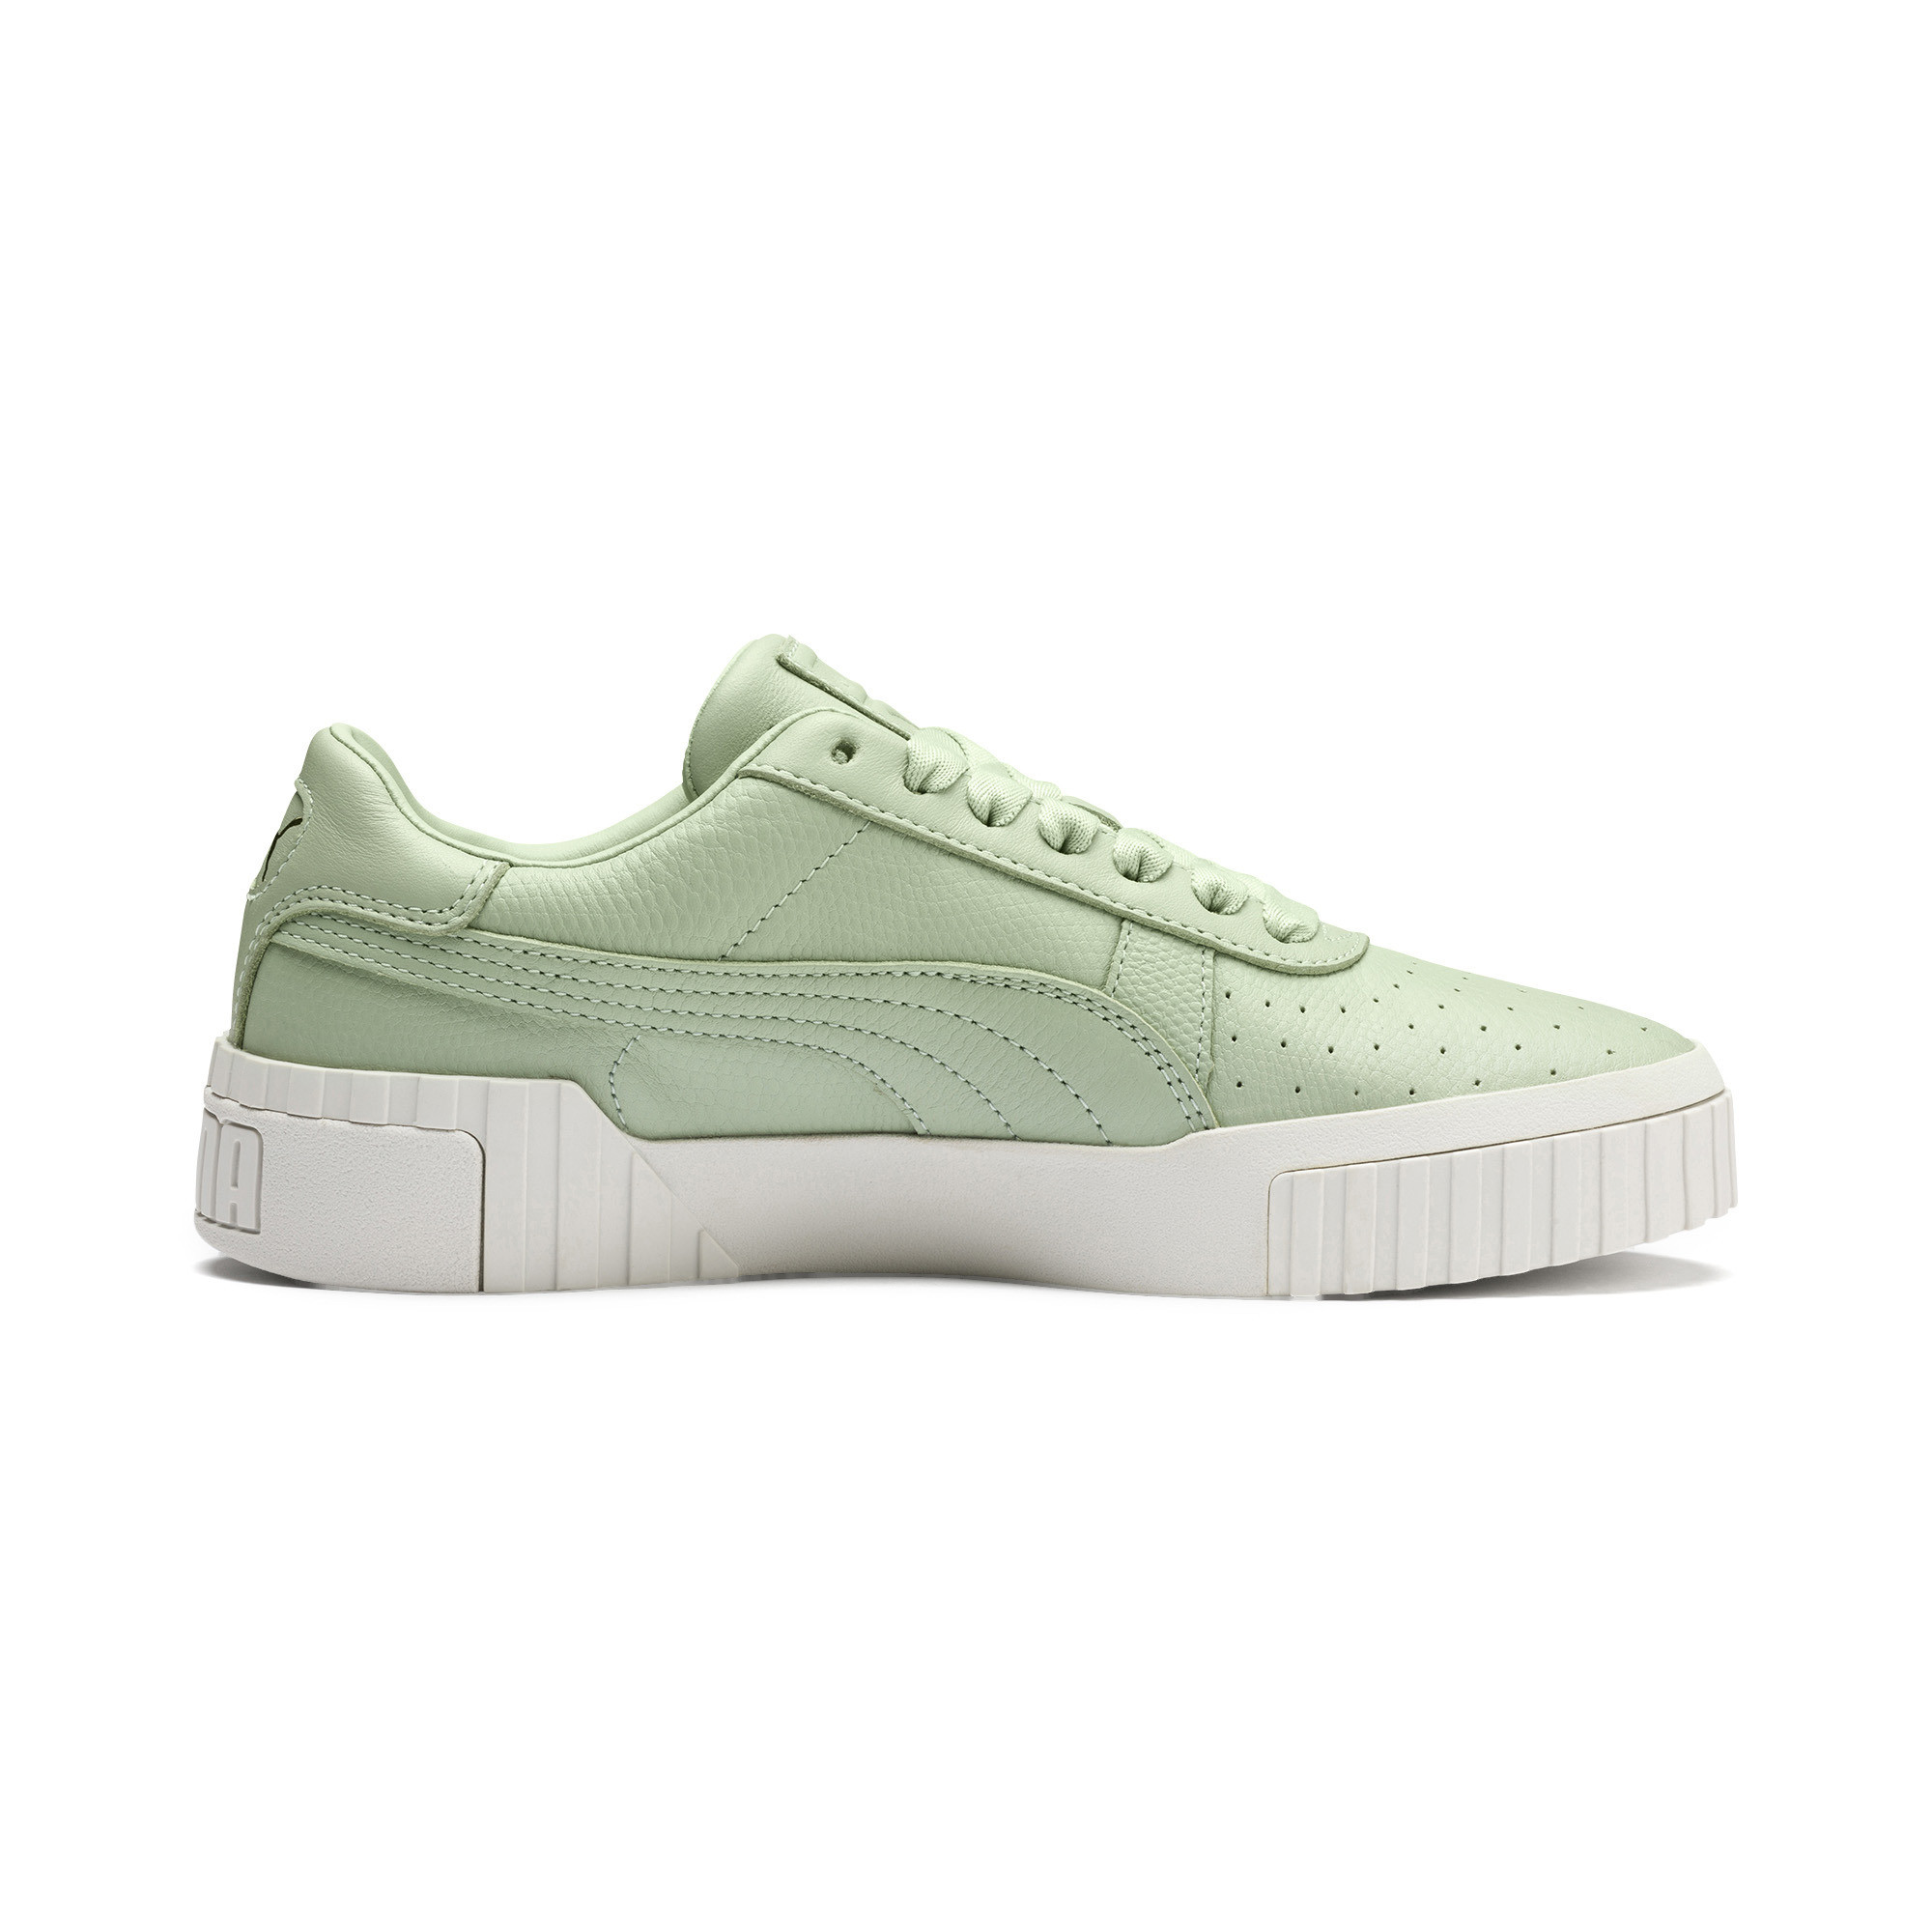 PUMA-Cali-Emboss-Women-039-s-Sneakers-Women-Shoe-Evolution thumbnail 7